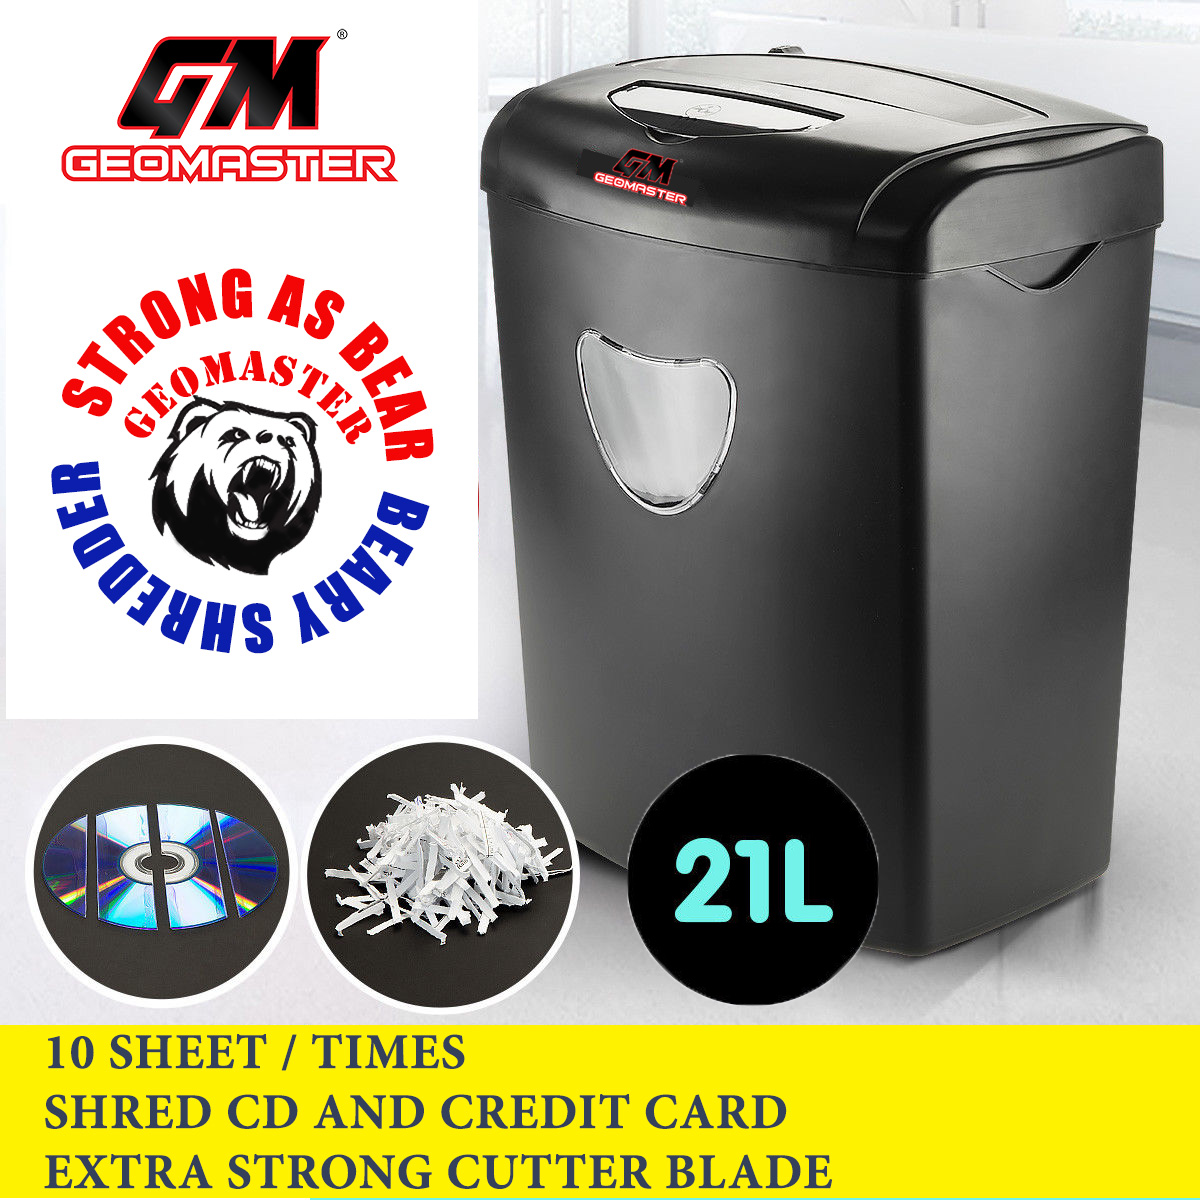 GM CROSS CUT PAPER SHREDDER MACHINE + BEARY STEEL STRONG CUTTER